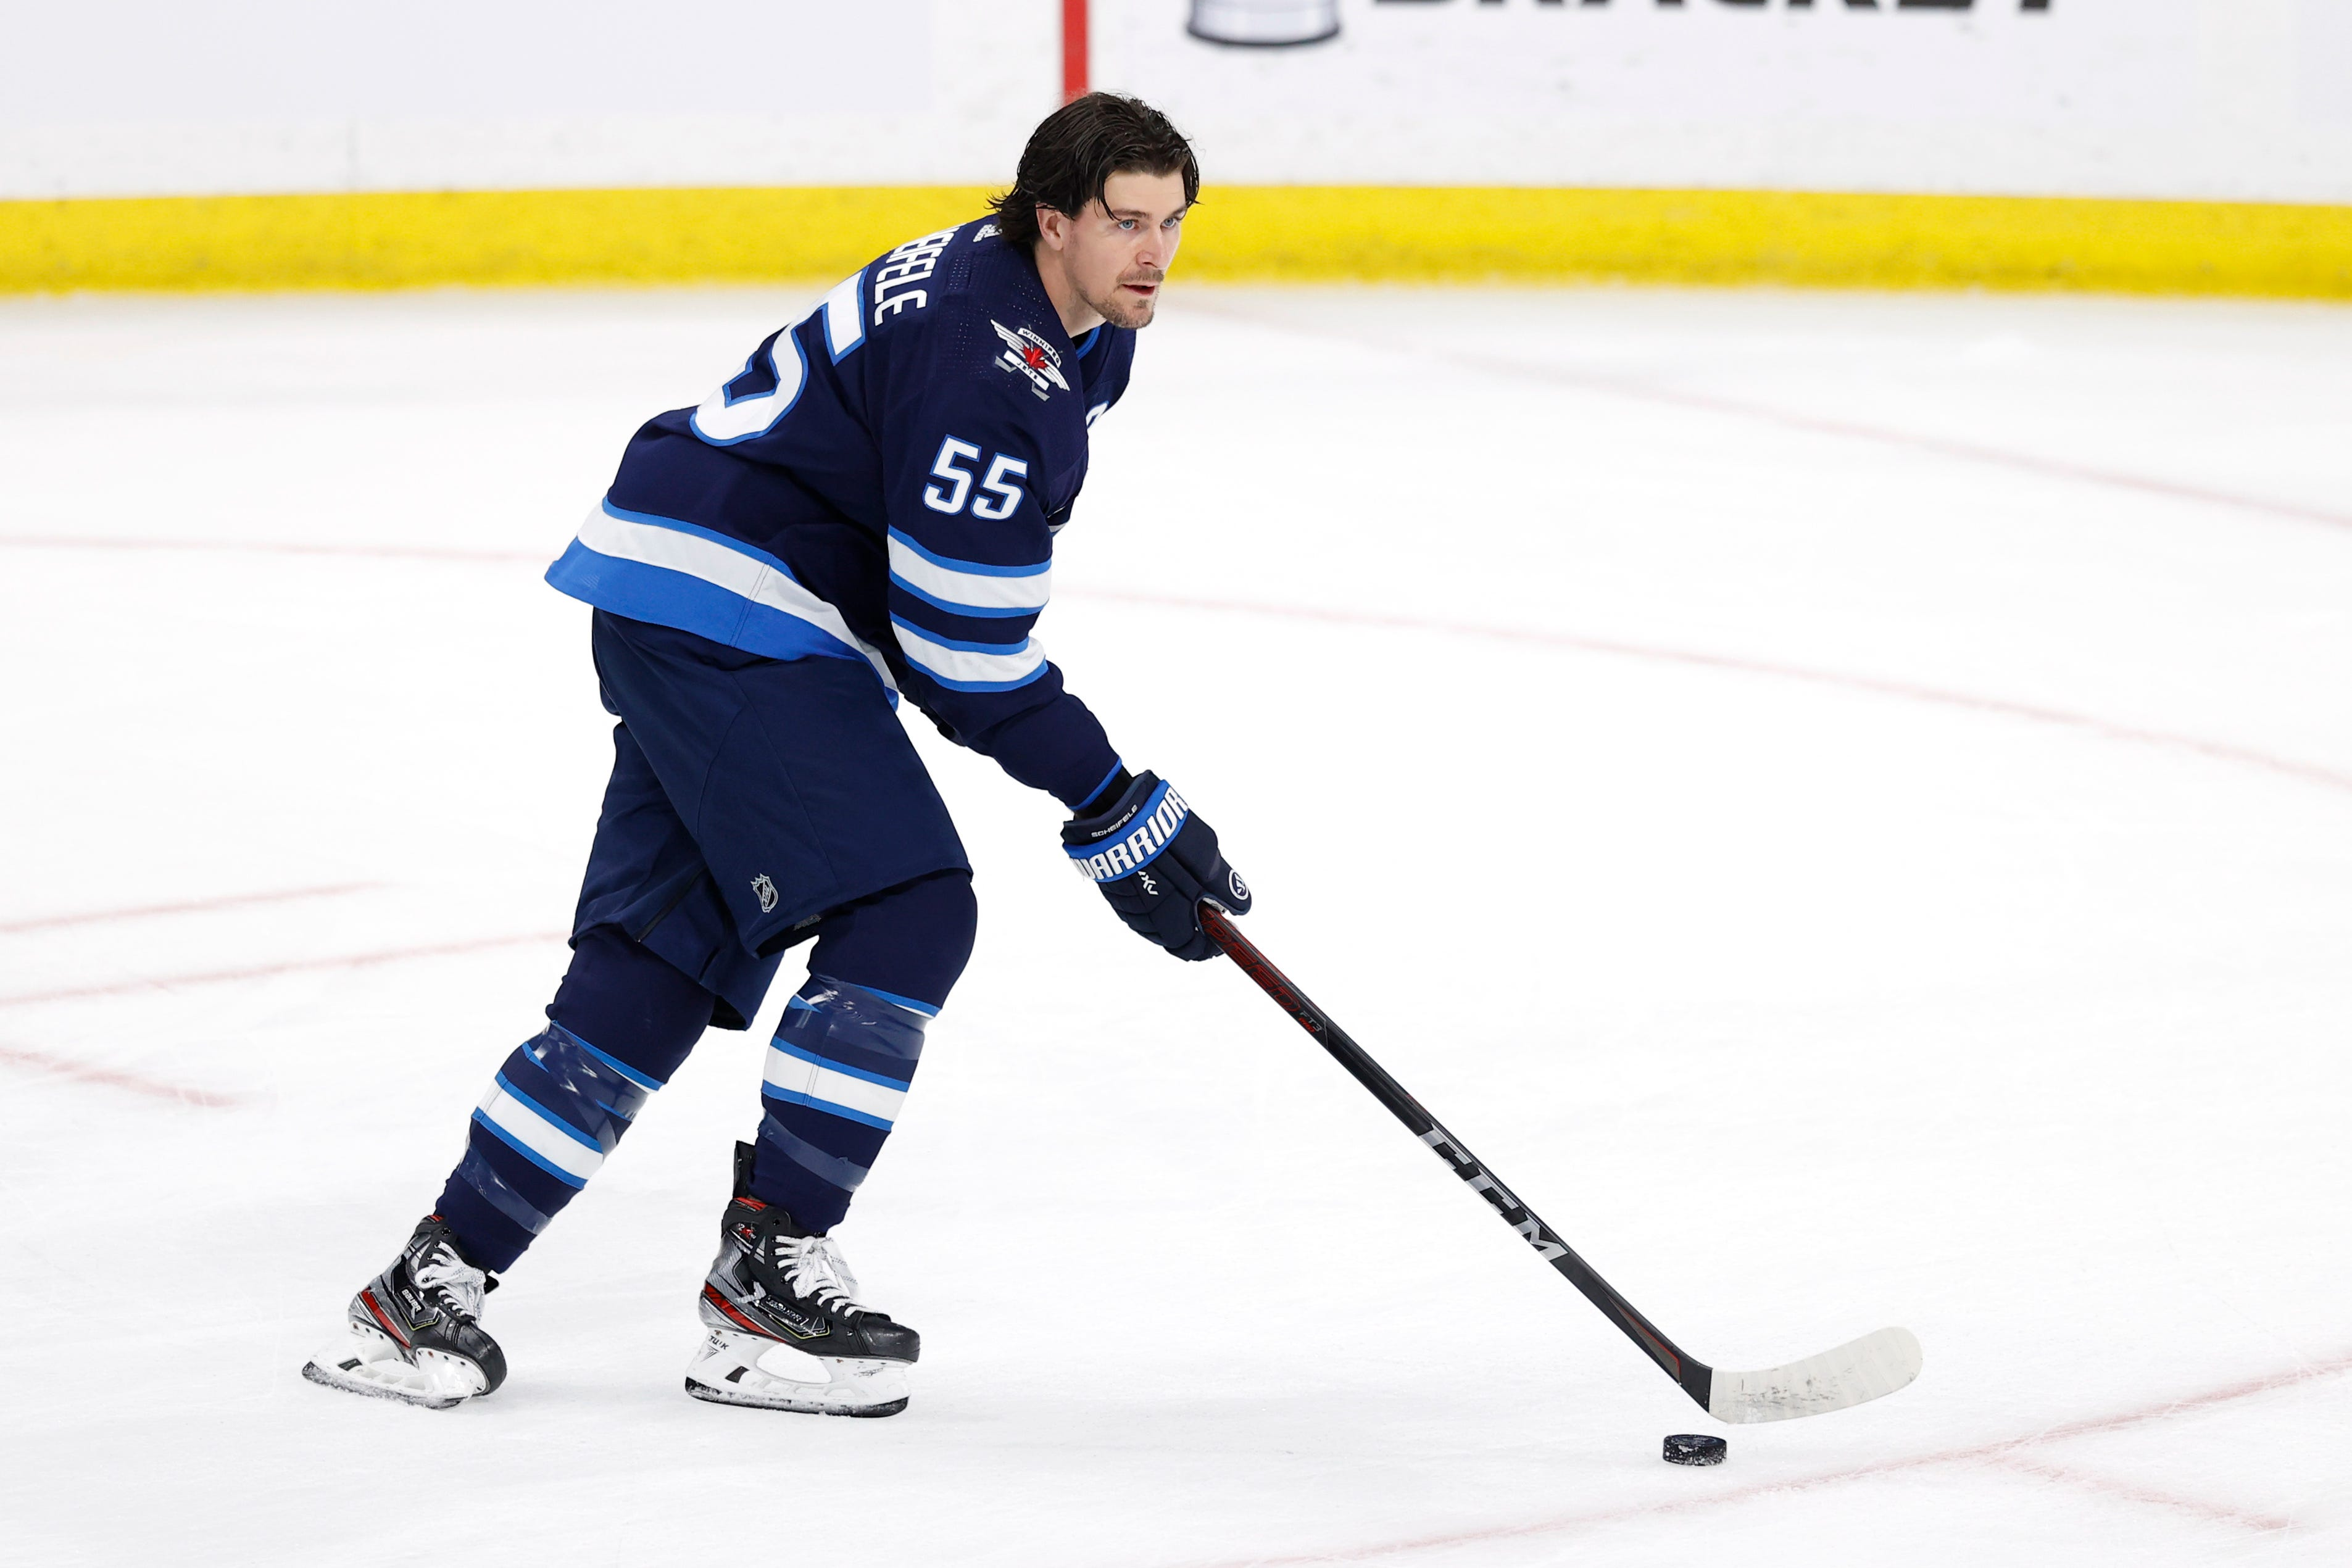 Jets' Mark Scheifele says family members received hateful messages after hit on Canadiens' Jake Evans